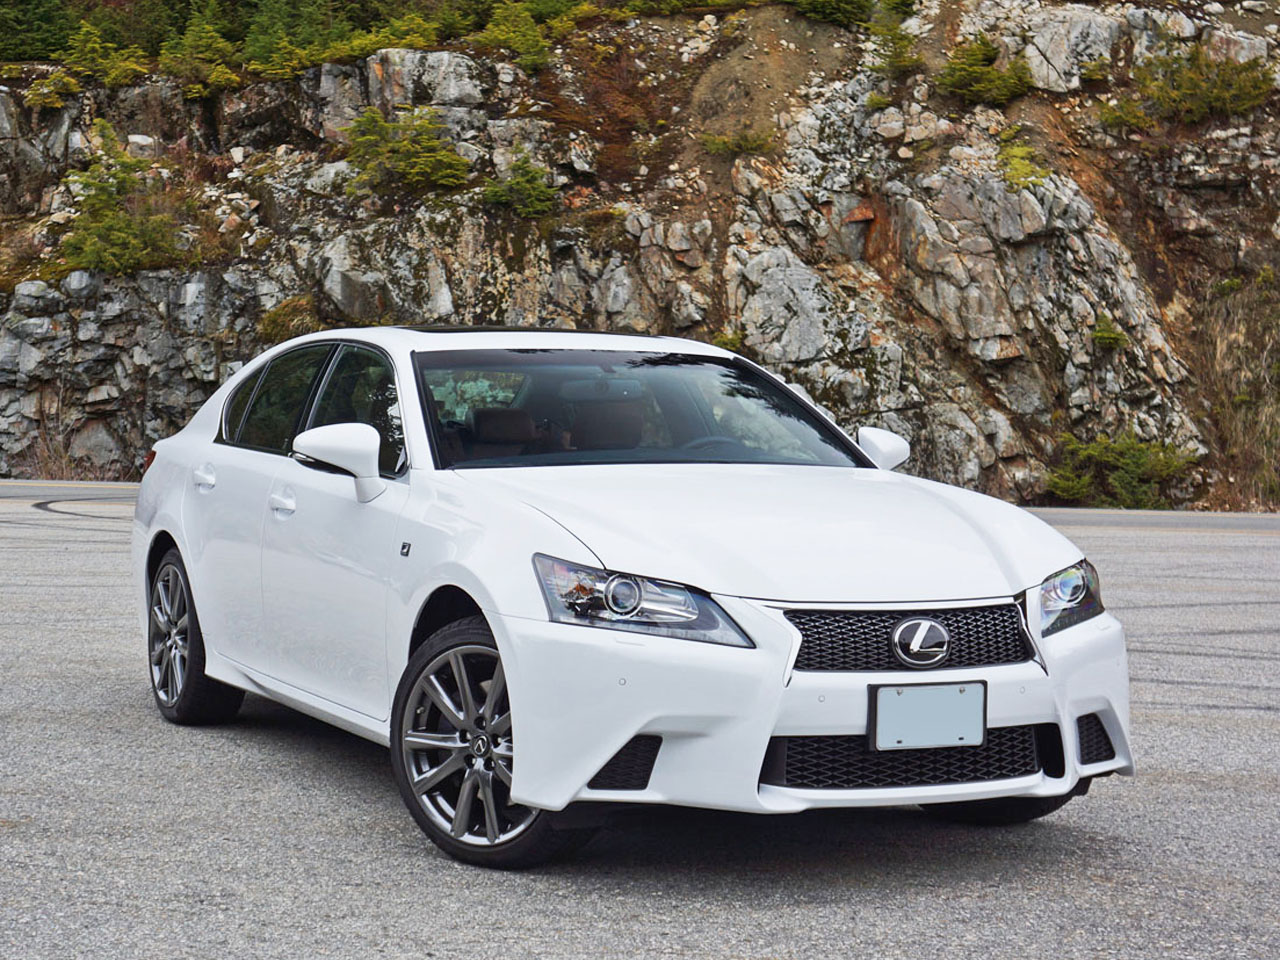 2015 lexus gs 350 awd f sport road test review carcostcanada. Black Bedroom Furniture Sets. Home Design Ideas